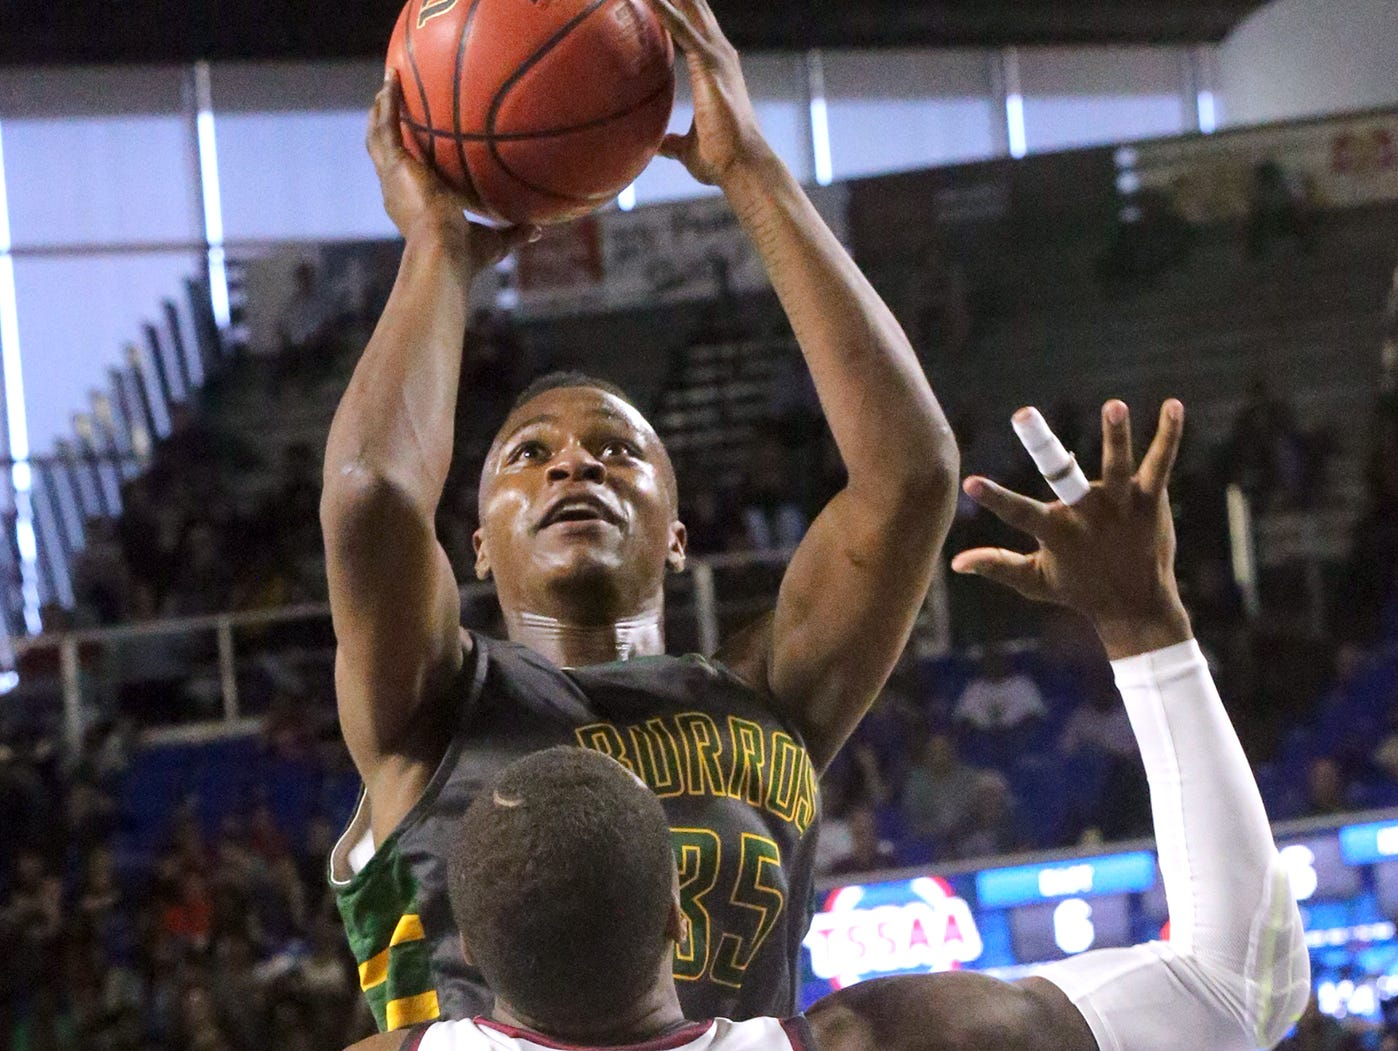 Hillsboro's Thomas Smith (35) goes up for a shot as Memphis East's Teddrick McGhee (5) guards him during the State Tournament Quarterfinal game Wednesday at MTSU.